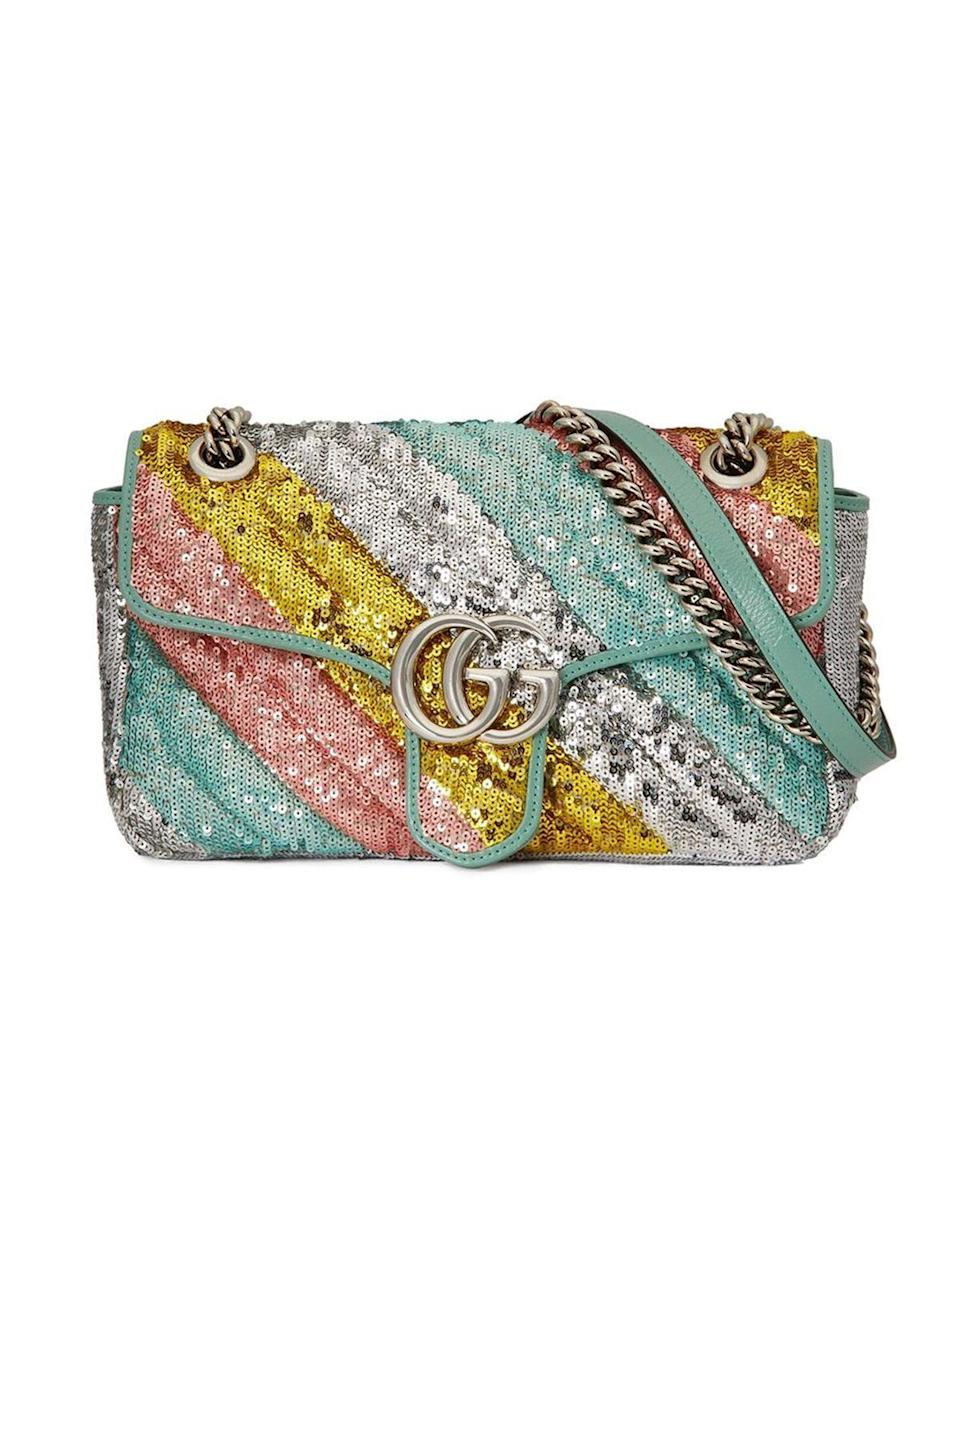 """<p><strong>Gucci</strong></p><p>farfetch.com</p><p><strong>$2980.00</strong></p><p><a href=""""https://go.redirectingat.com?id=74968X1596630&url=https%3A%2F%2Fwww.farfetch.com%2Fshopping%2Fwomen%2Fgucci-gg-marmont-sequinned-shoulder-bag-item-16079715.aspx&sref=https%3A%2F%2Fwww.townandcountrymag.com%2Fstyle%2Ffashion-trends%2Fg36544376%2Fbest-metallic-accessories%2F"""" rel=""""nofollow noopener"""" target=""""_blank"""" data-ylk=""""slk:Shop Now"""" class=""""link rapid-noclick-resp"""">Shop Now</a></p><p>Sequins! Sparkle! Gucci! This shoulder bag has it all and will jazz up even a simple white t-shirt and jeans. </p>"""